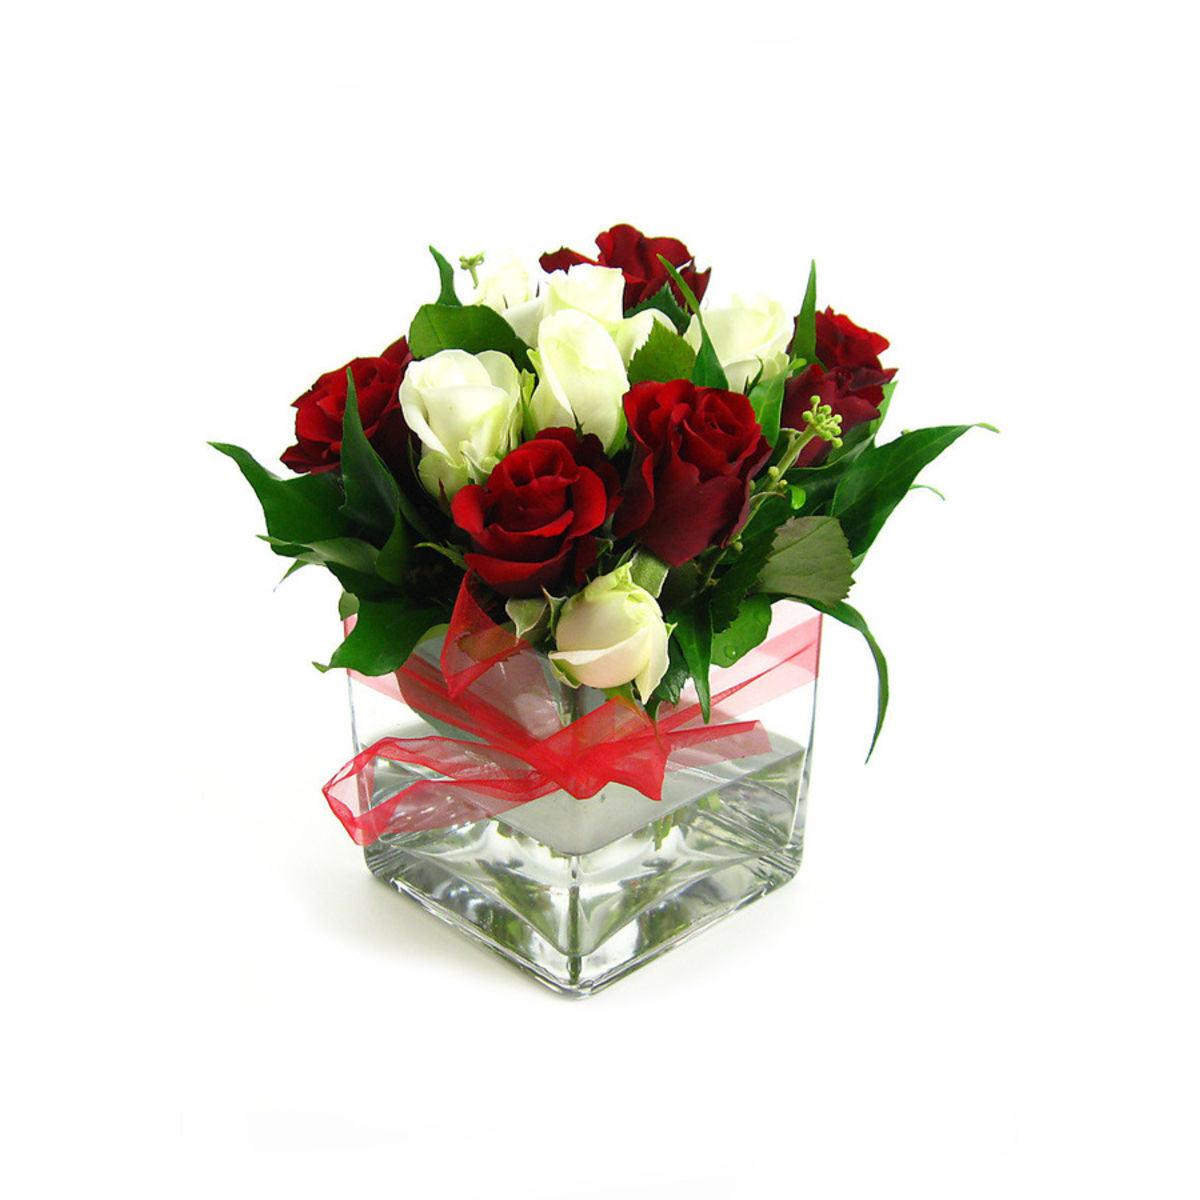 Red & White Rose Vase - Godiva Coeur Iconique Grand - Arabian Petals